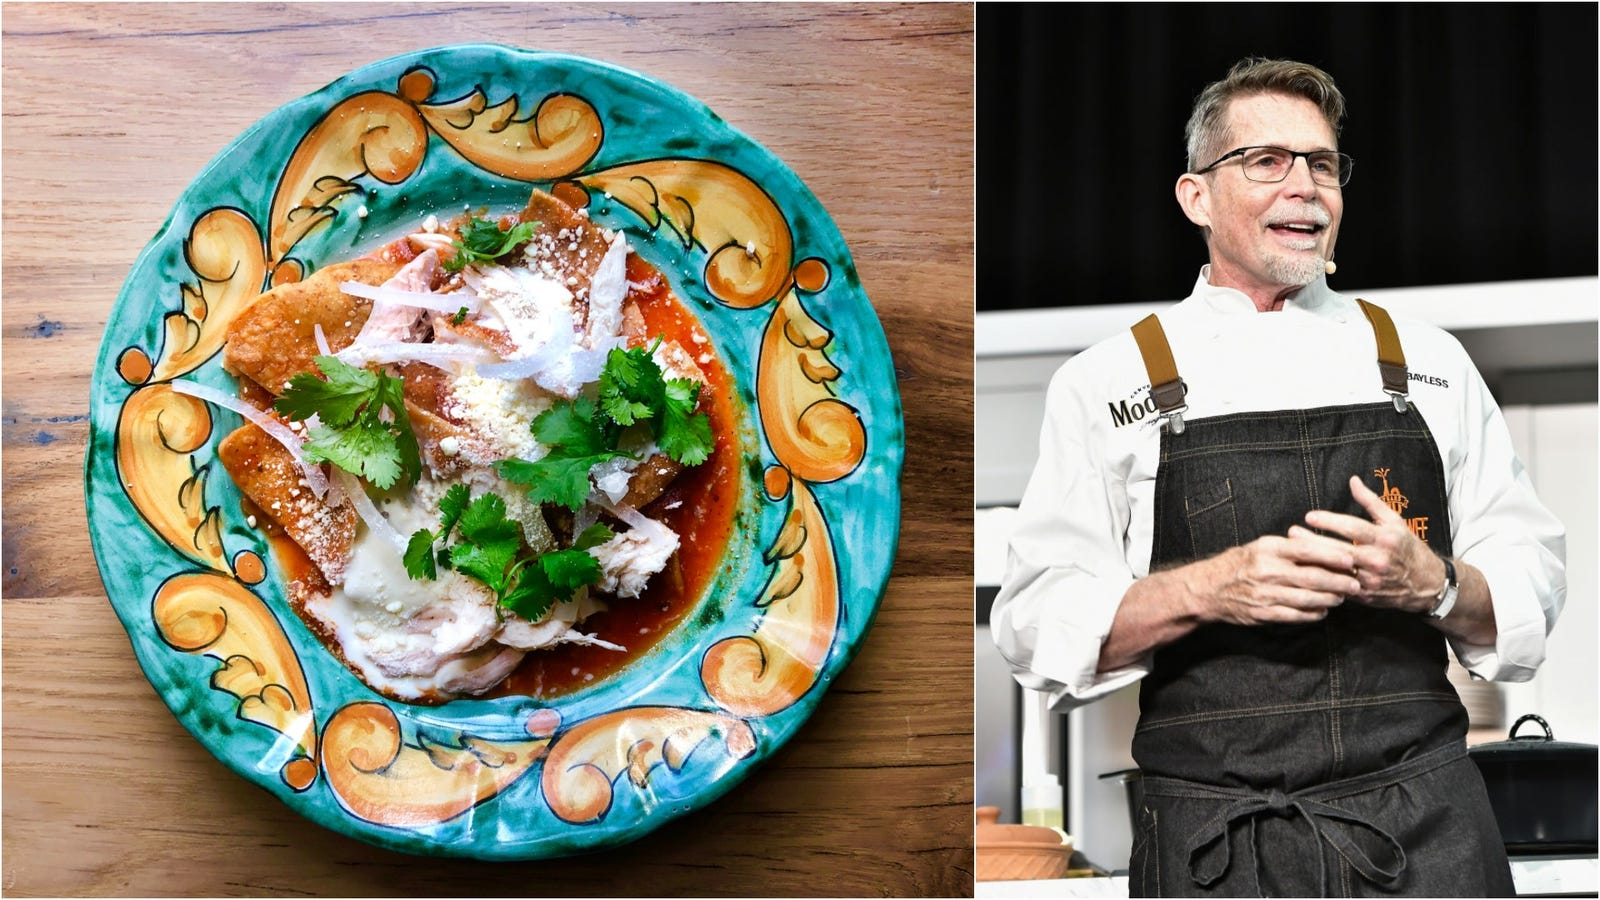 A chilaquiles private lesson with Rick Bayless - The Takeout